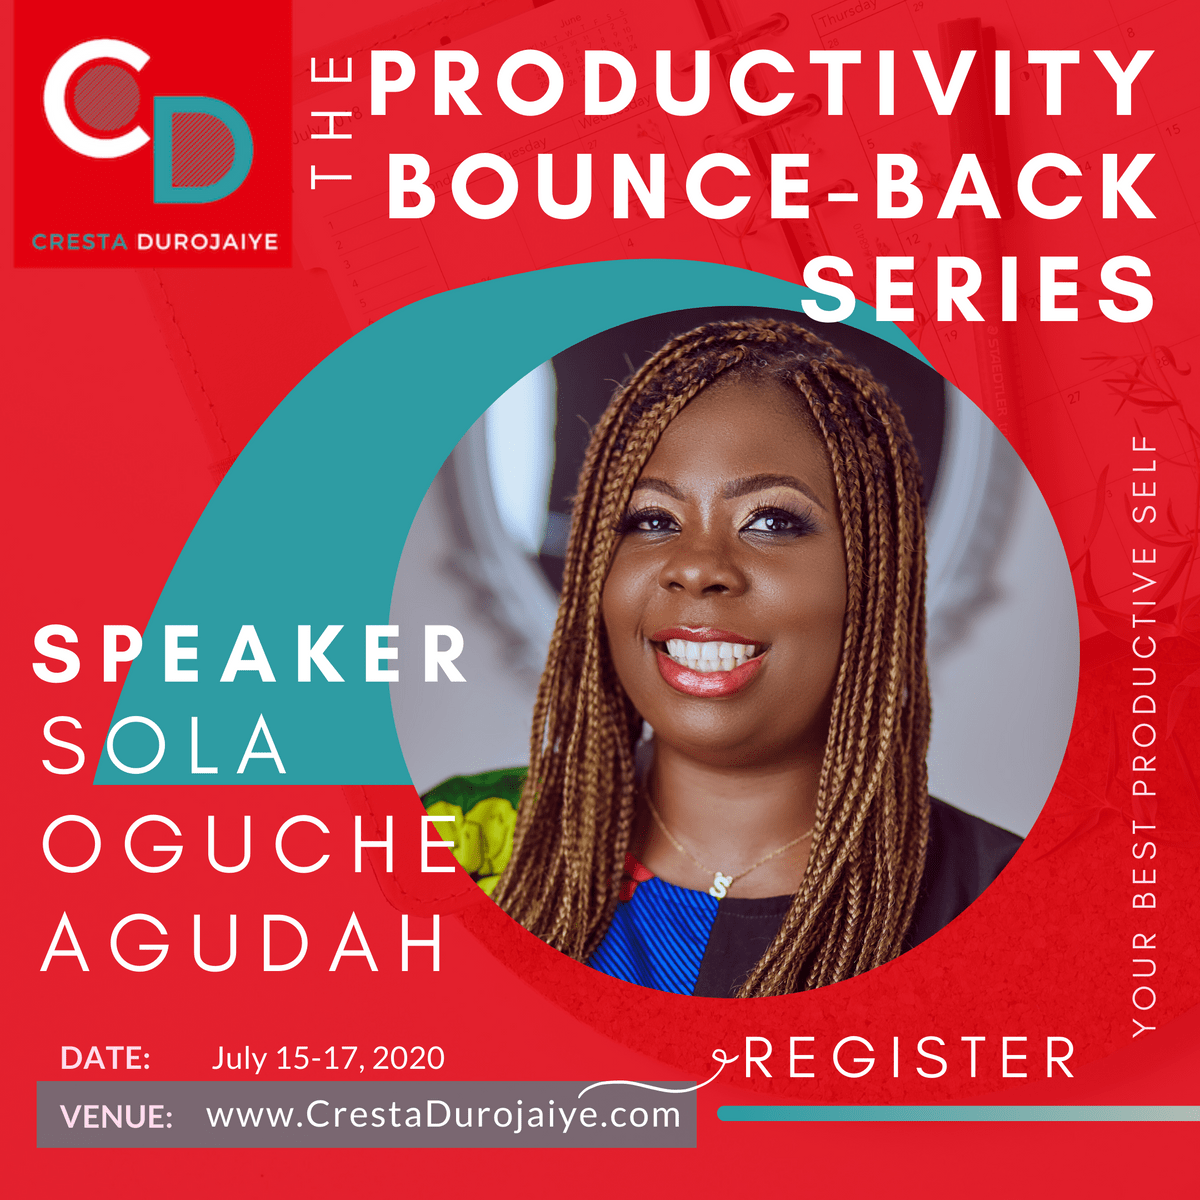 Sola Oguche Agudah is speaking at The Productivity Bounce Back Series